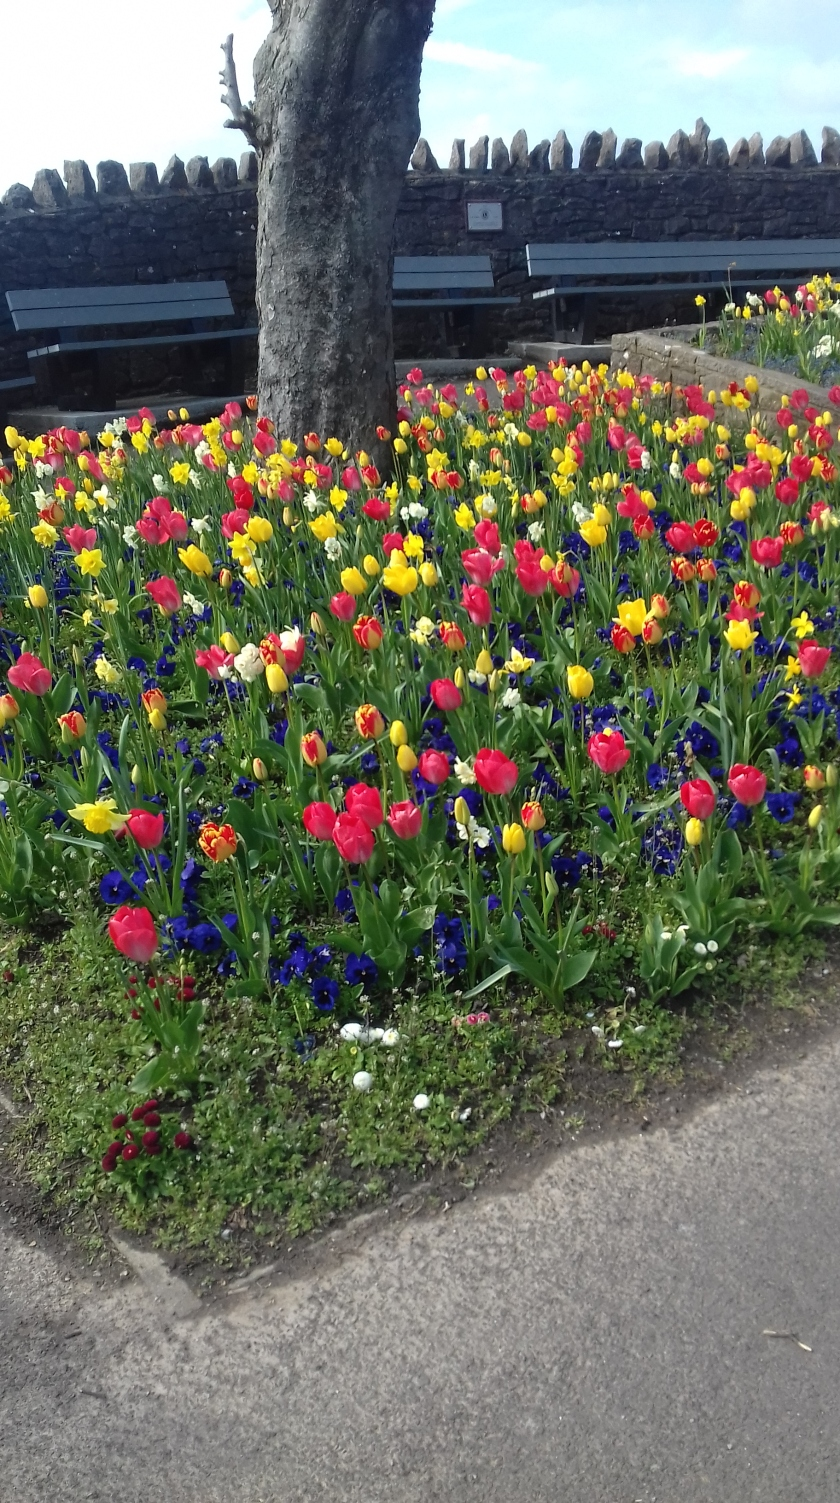 Tulips in a flower bed #Sunday stills